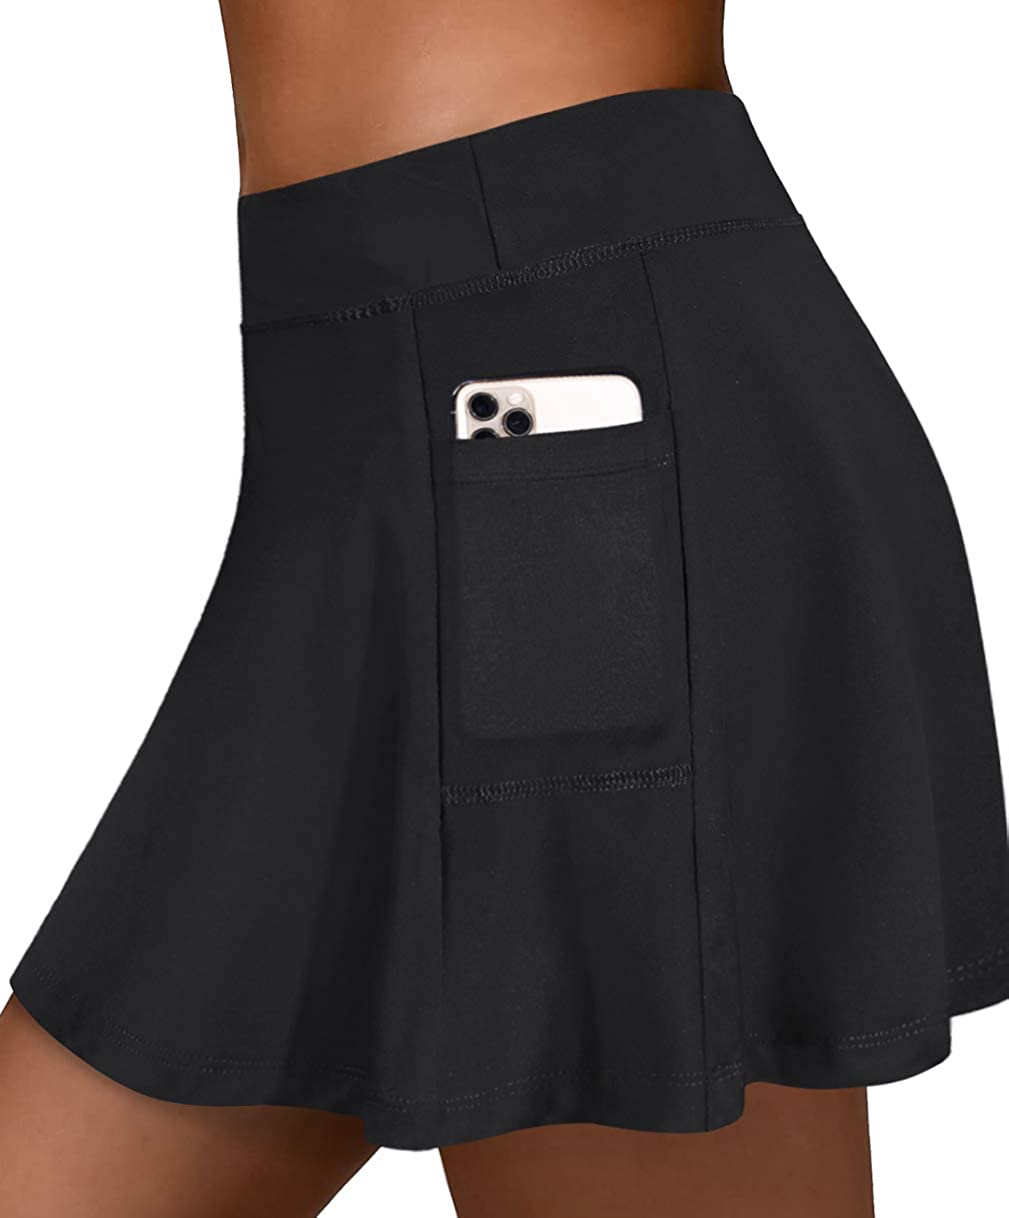 Fulbelle Womens Athletic Tennis Skirts Elastic Golf Skorts with Pockets: Clothing